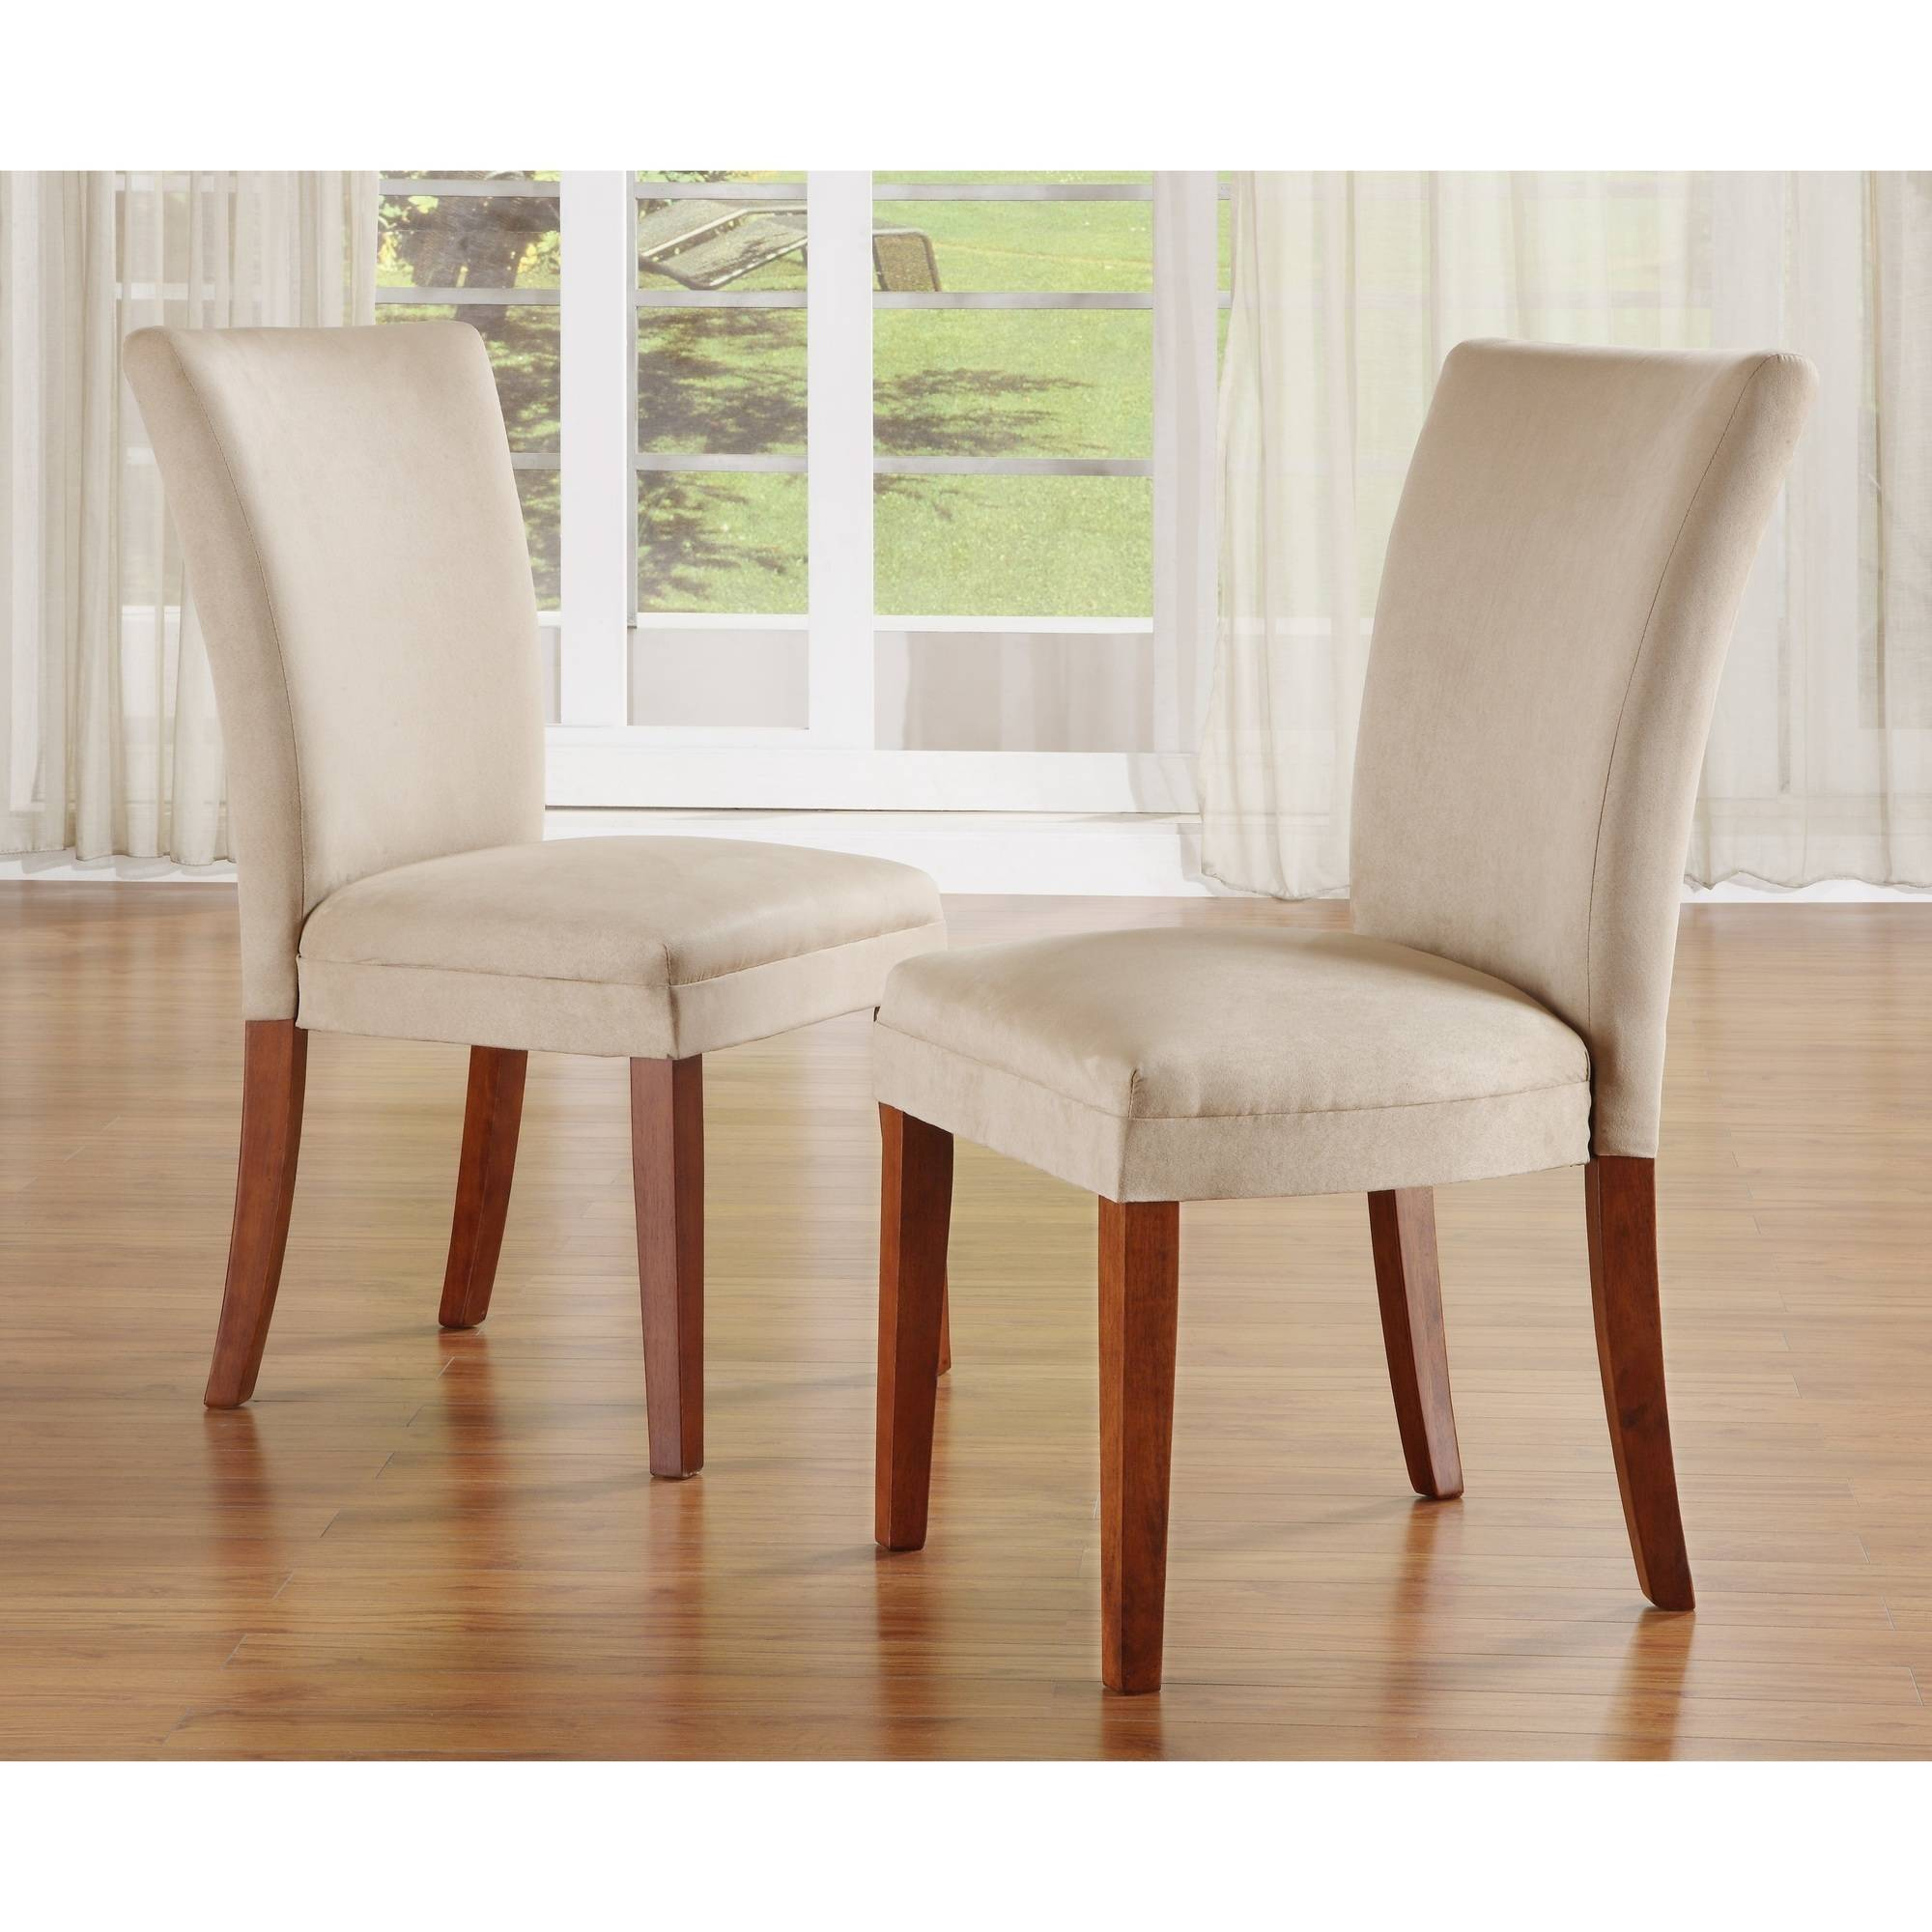 parsons chairs set of 2 parson dining chairs, peat KWVFYPO